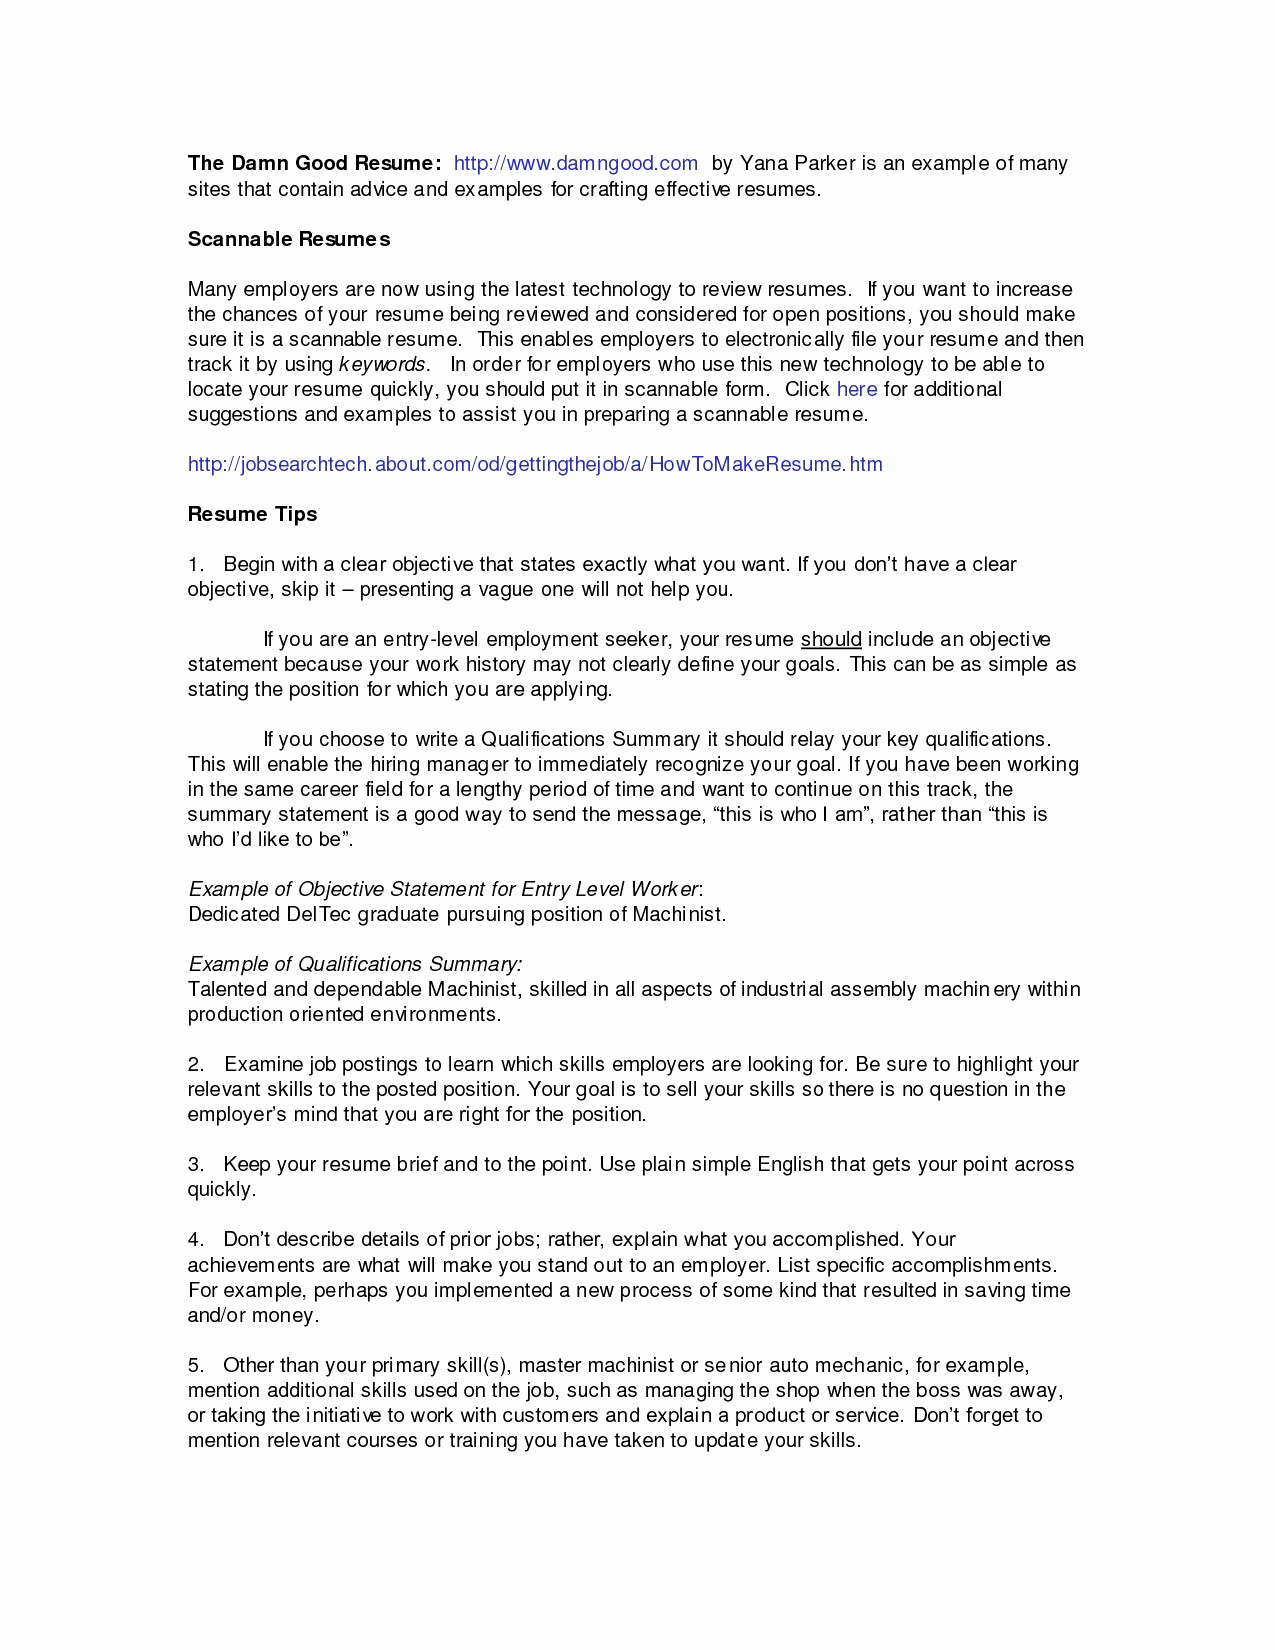 Certified Professional Resume Writer - 19 Awesome Certified Professional Resume Writer